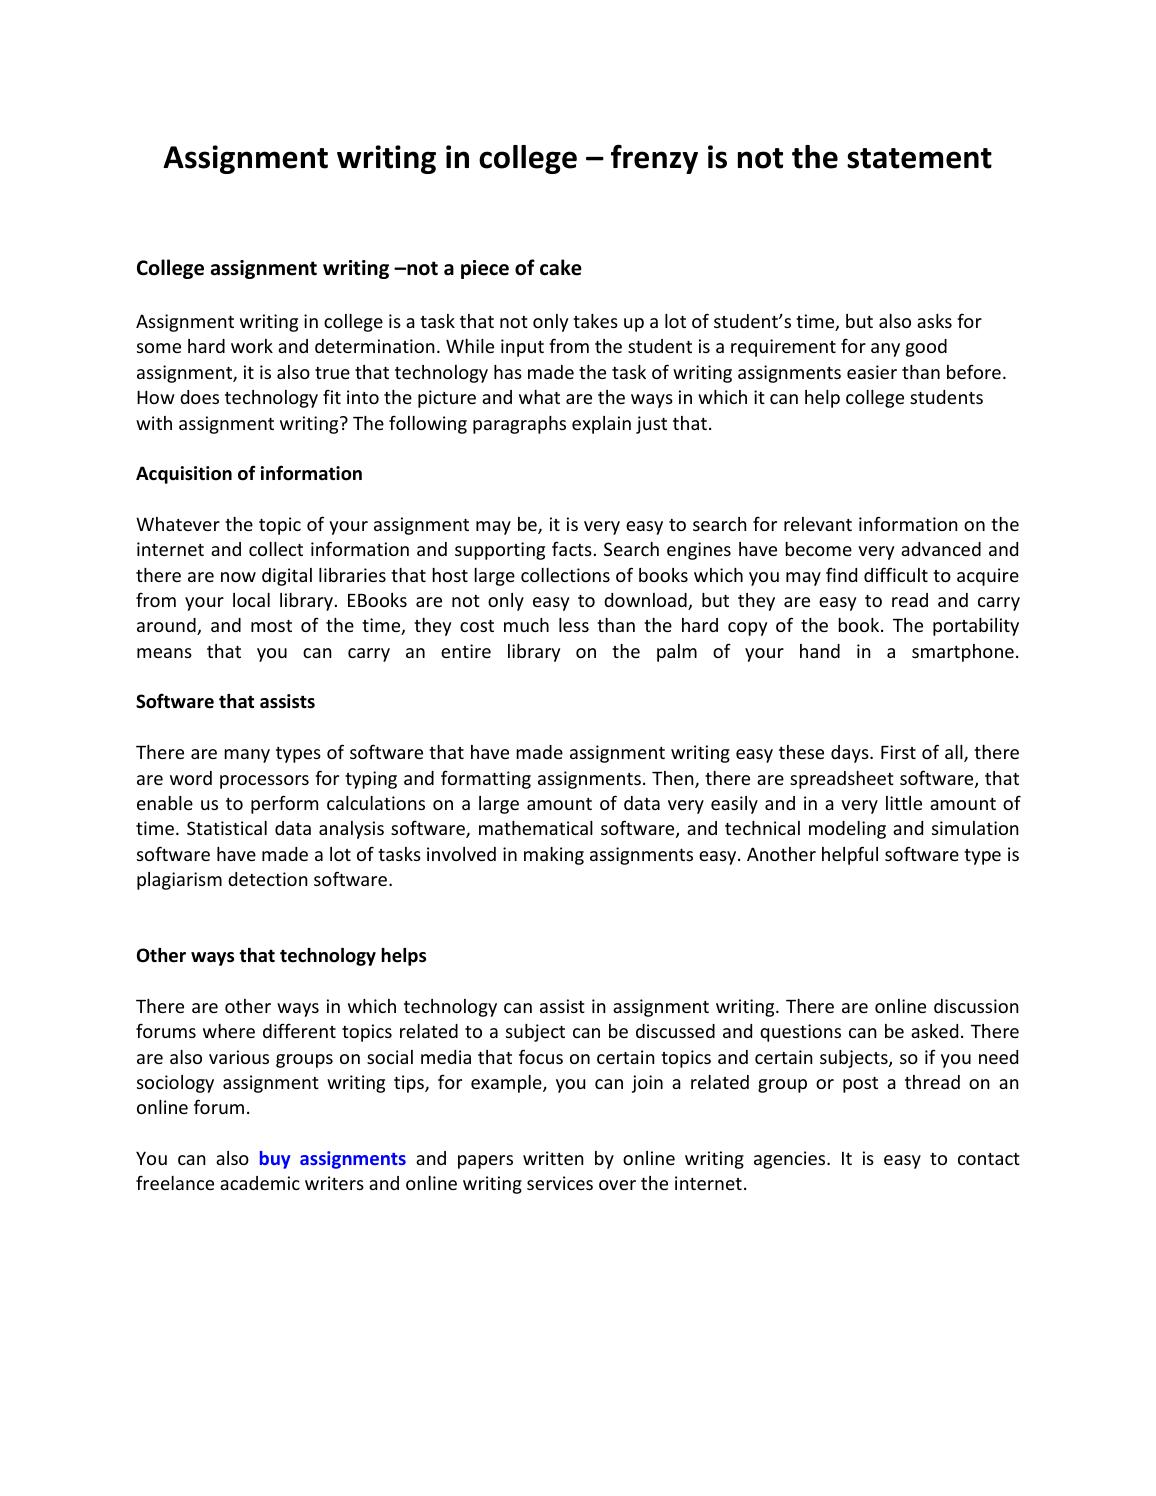 Assignment writing in college by Buy Assignment Service - issuu